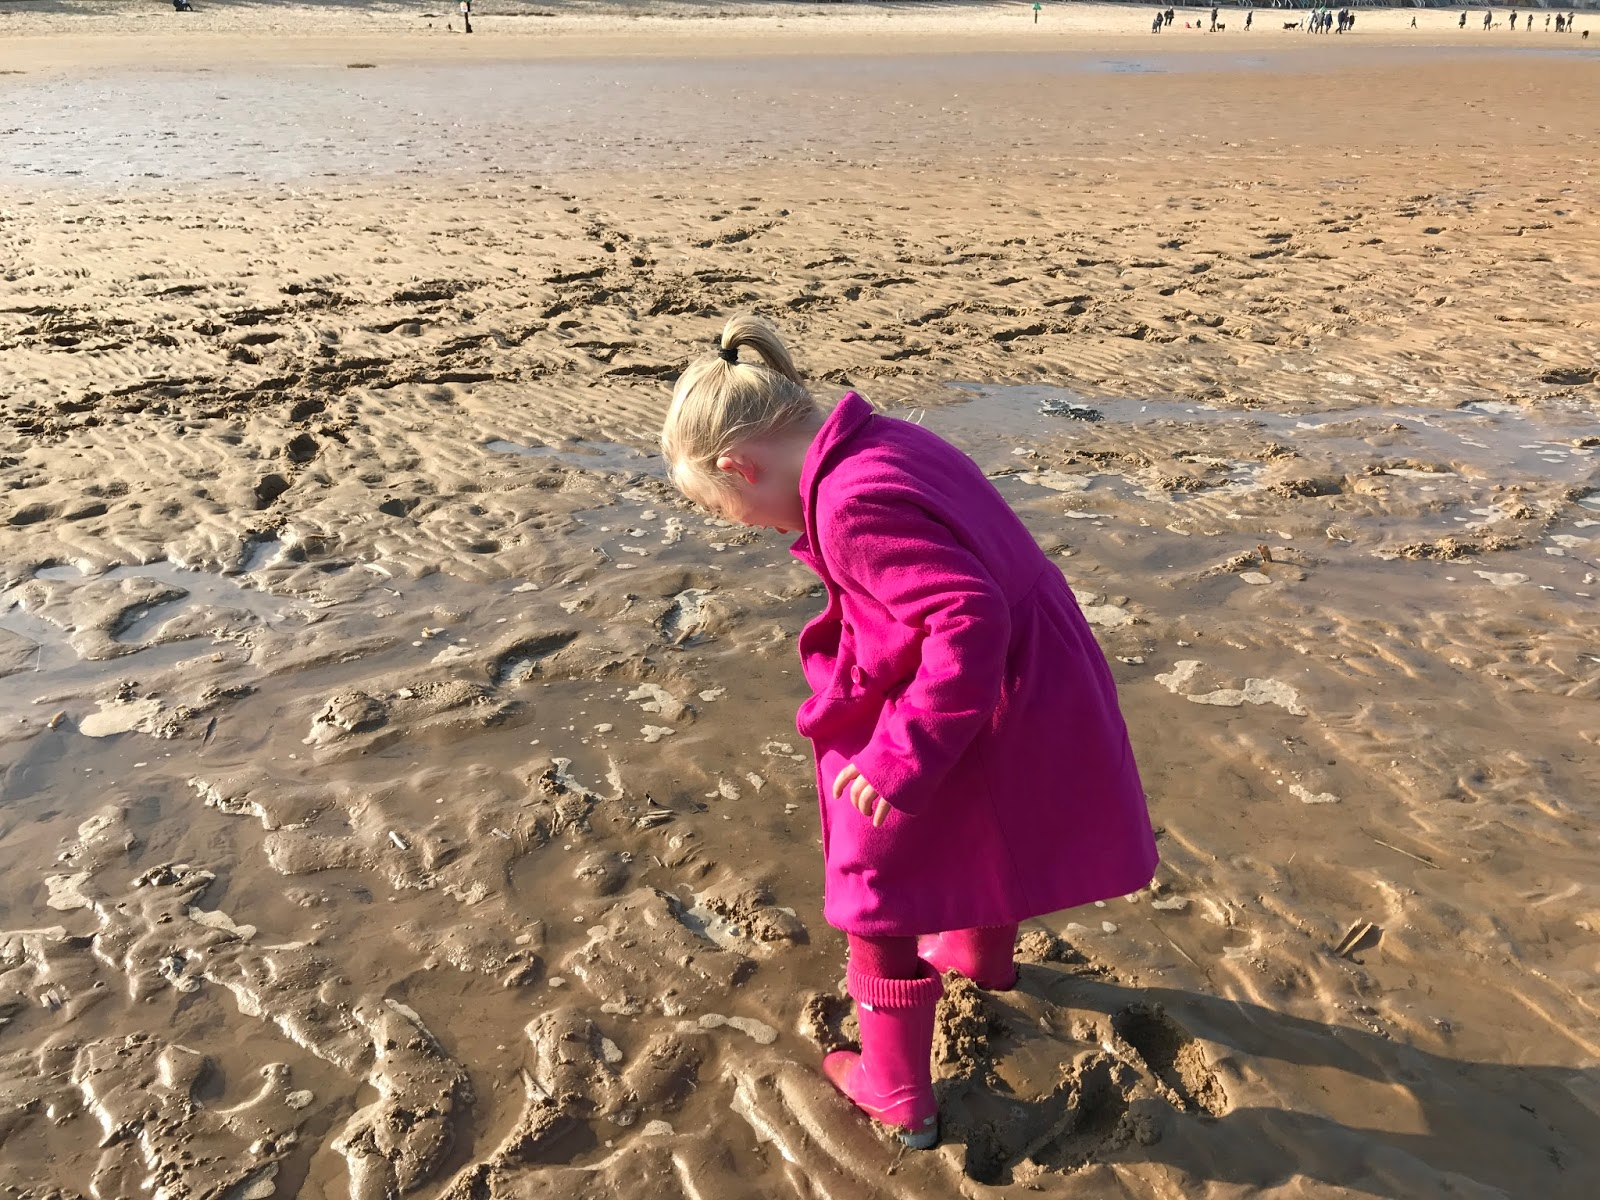 A 5 year old girl all dressed in pink looks down at her pink wellies as her feet sink in wet sand